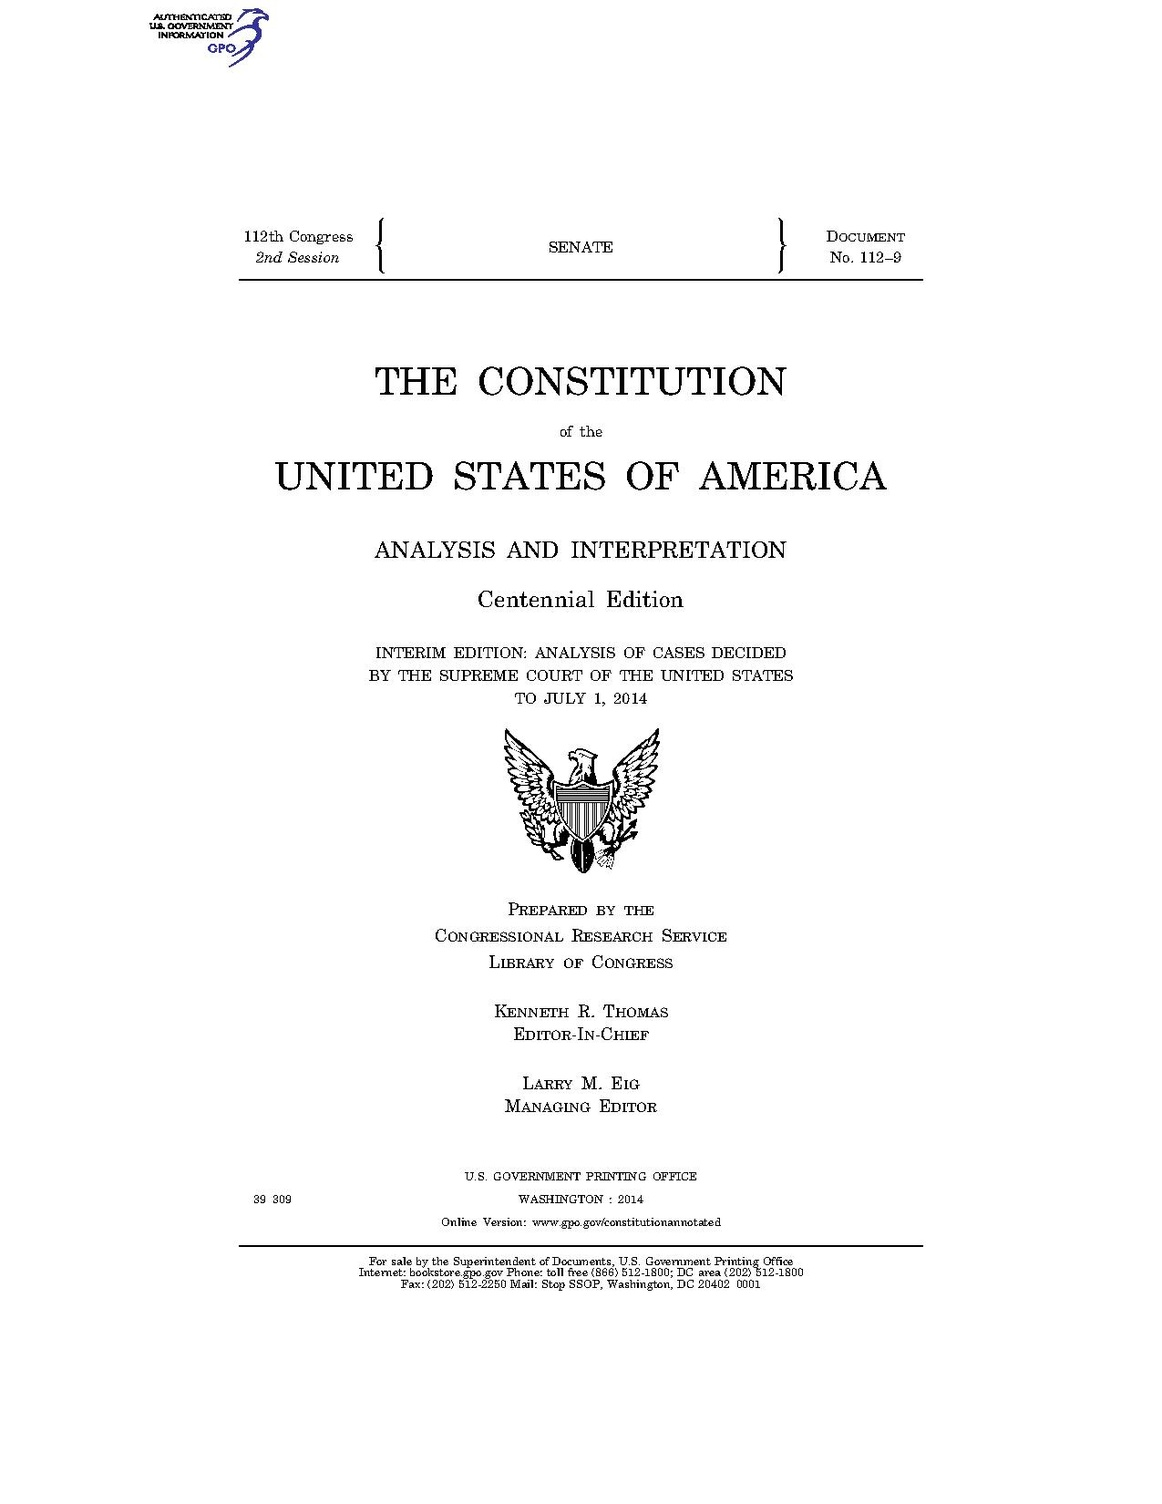 the constitution of the united states of america essay